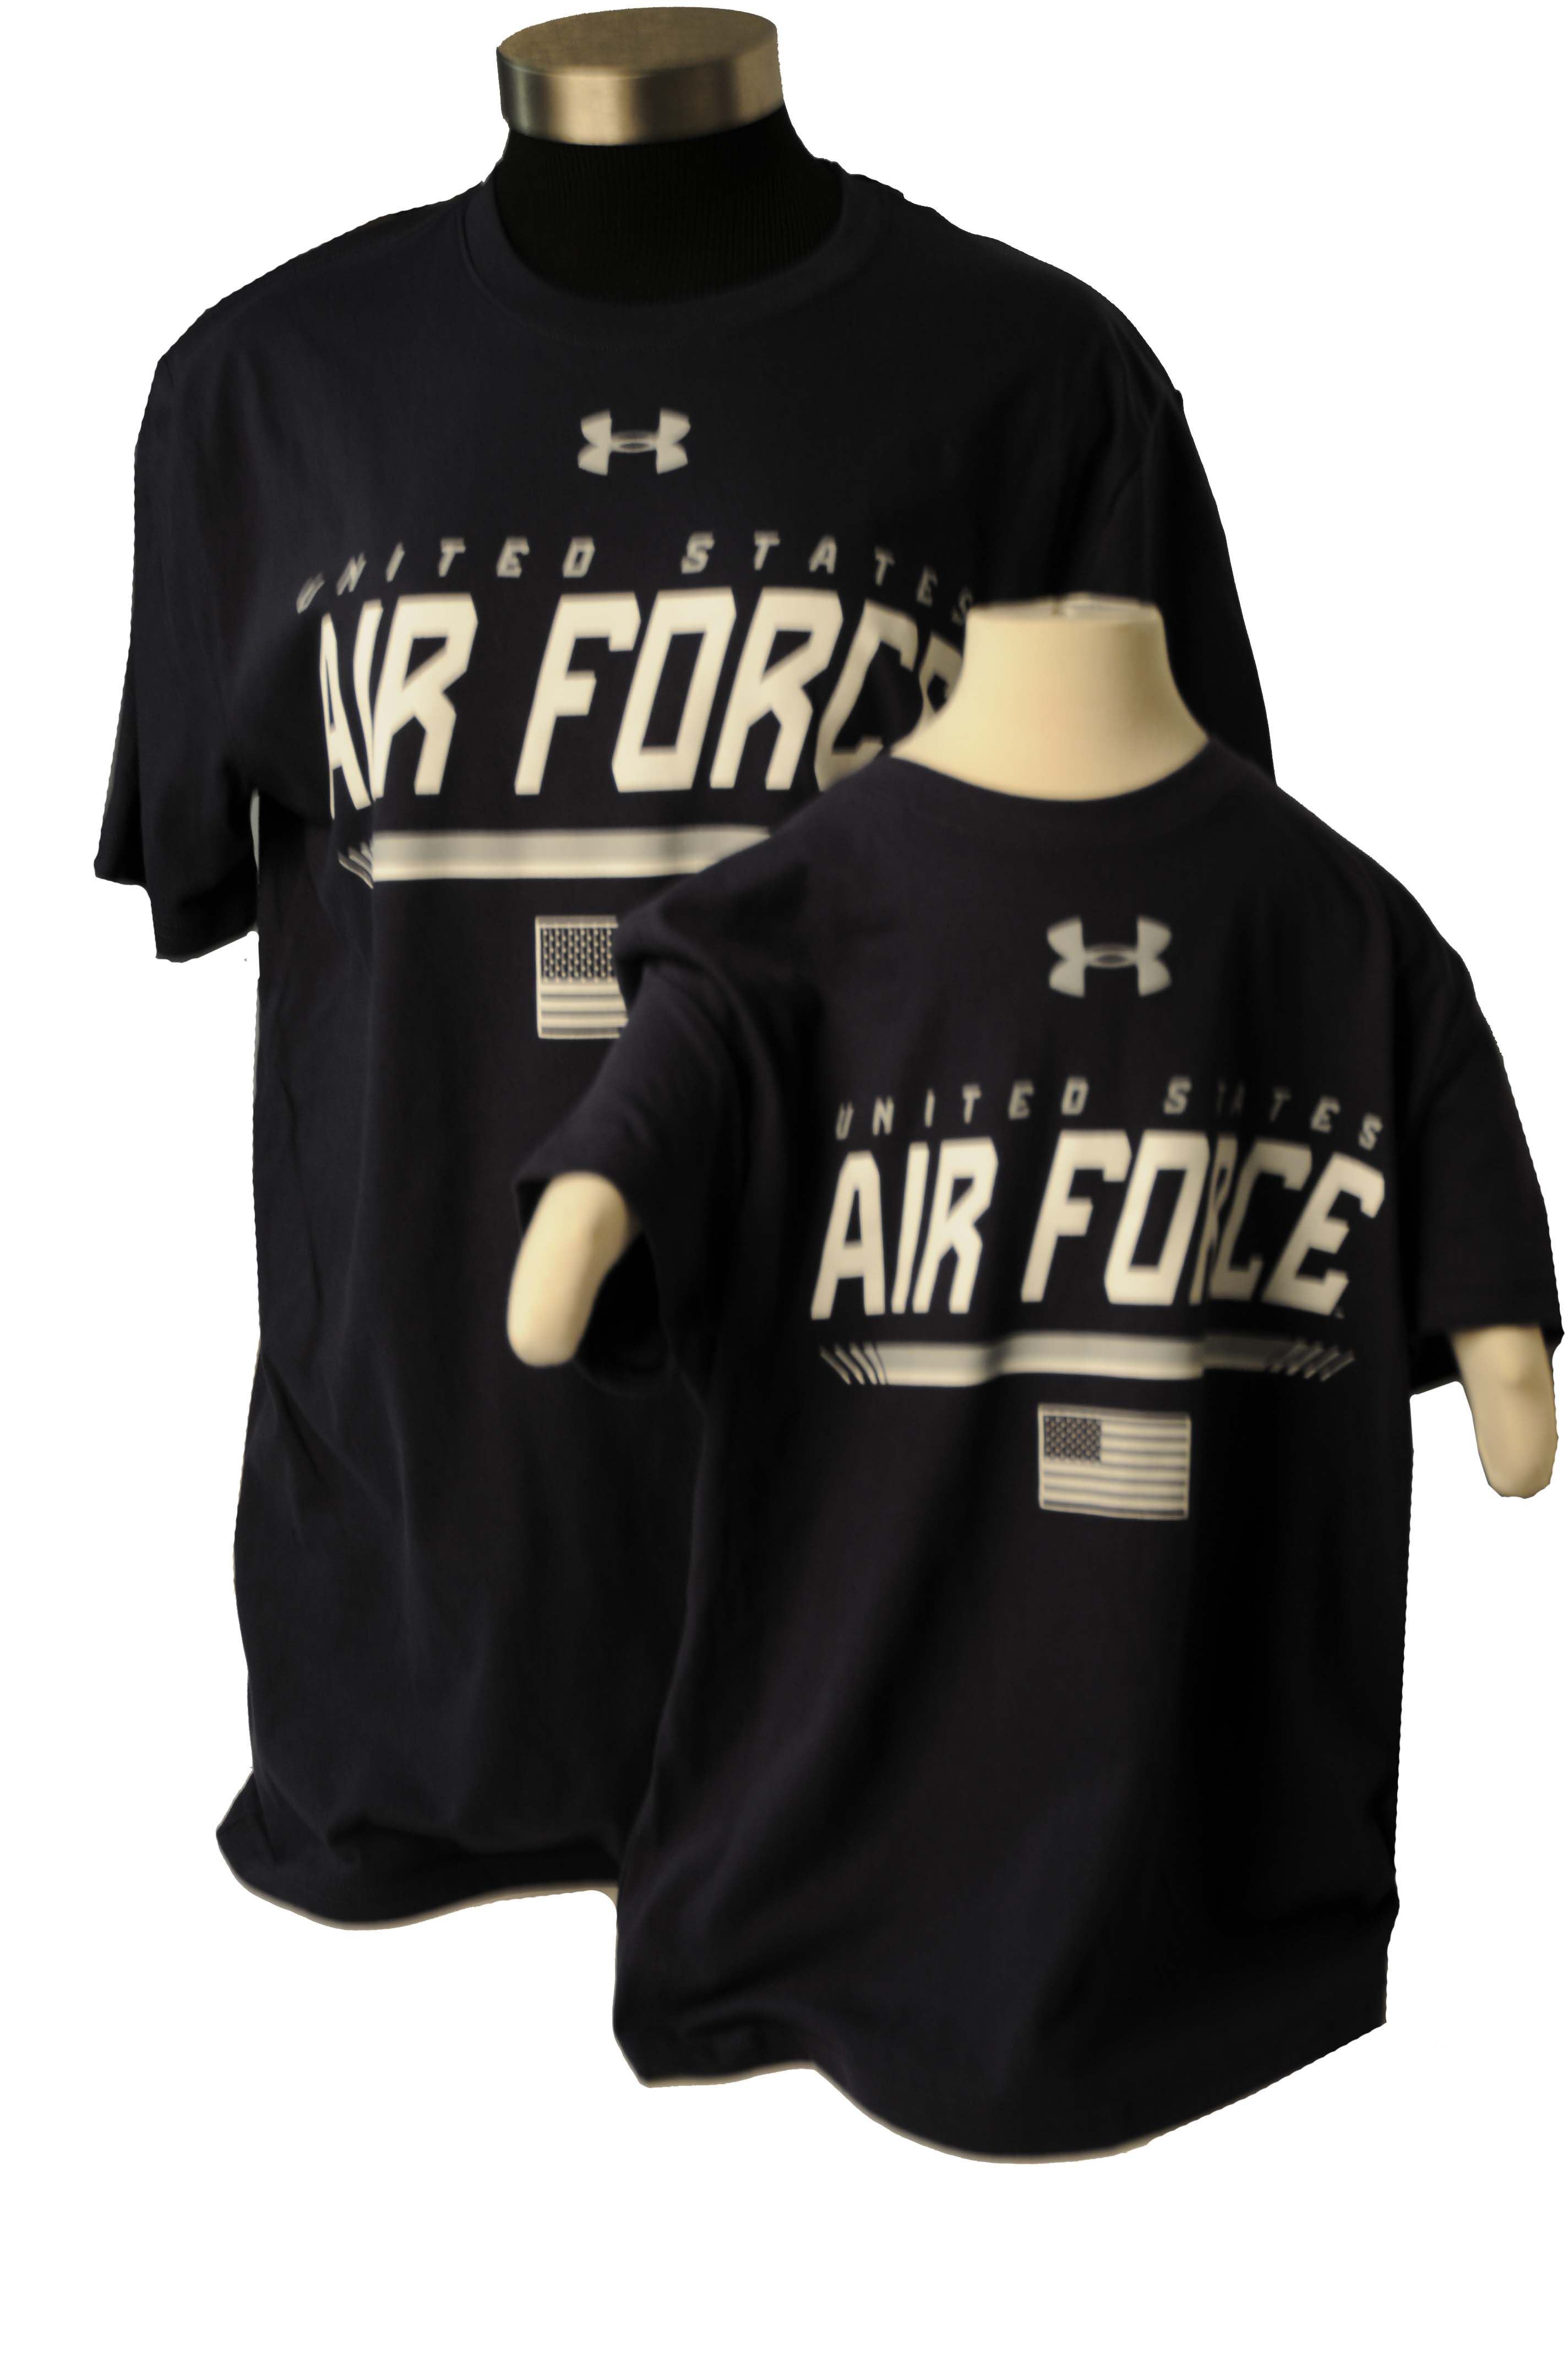 UNDER ARMOUR AIR FORCE KIDS Under Armour shirt featuring